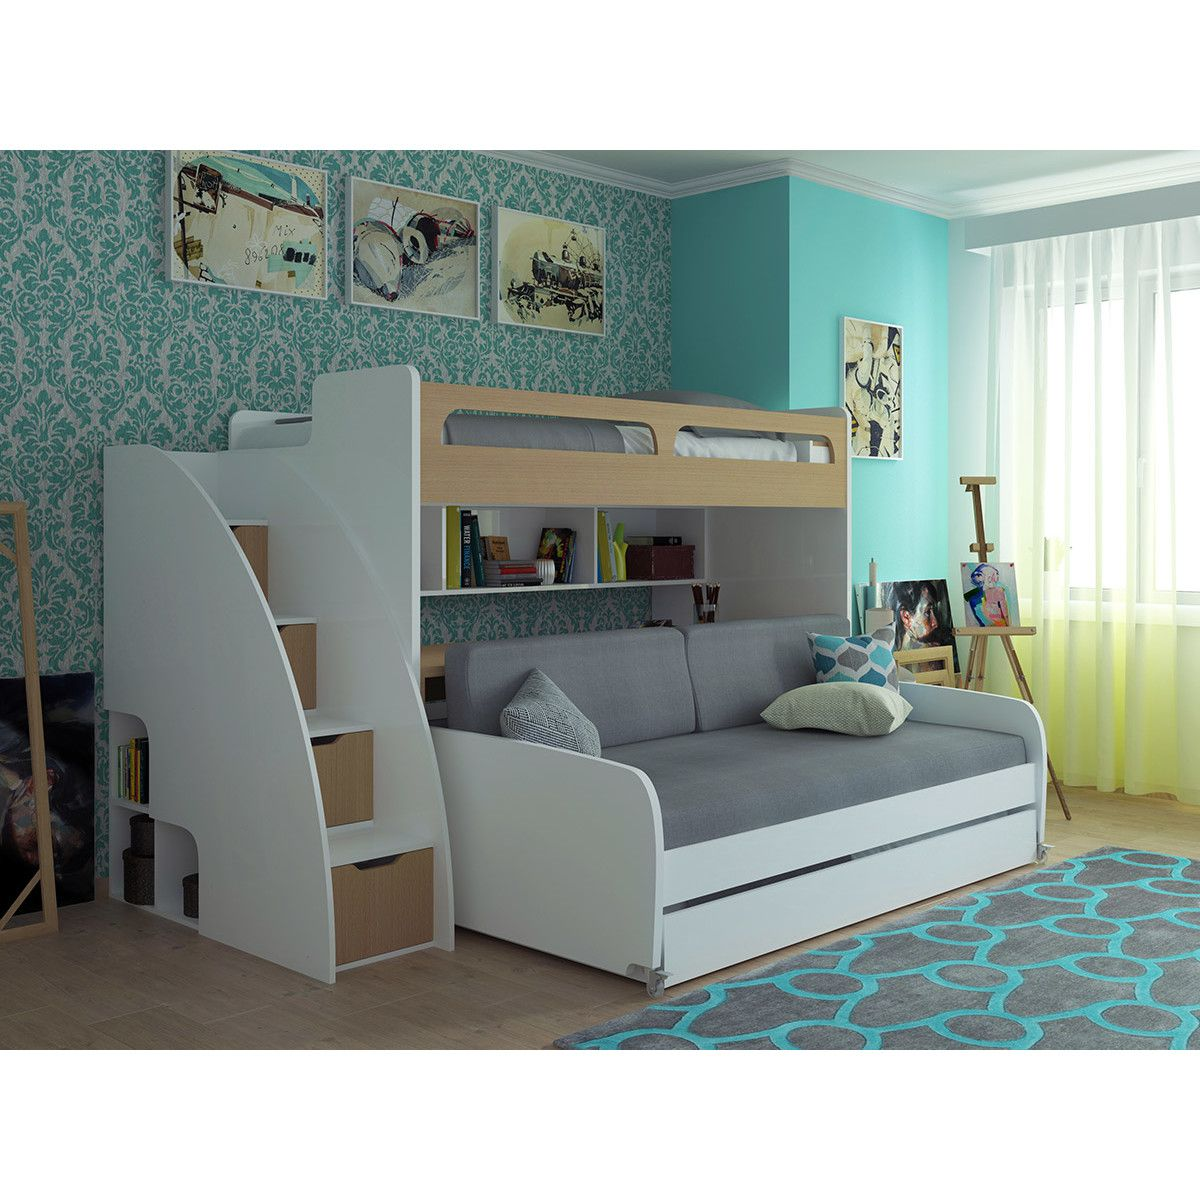 Shop Wayfair for all the best Kids Beds. Enjoy Free Shipping